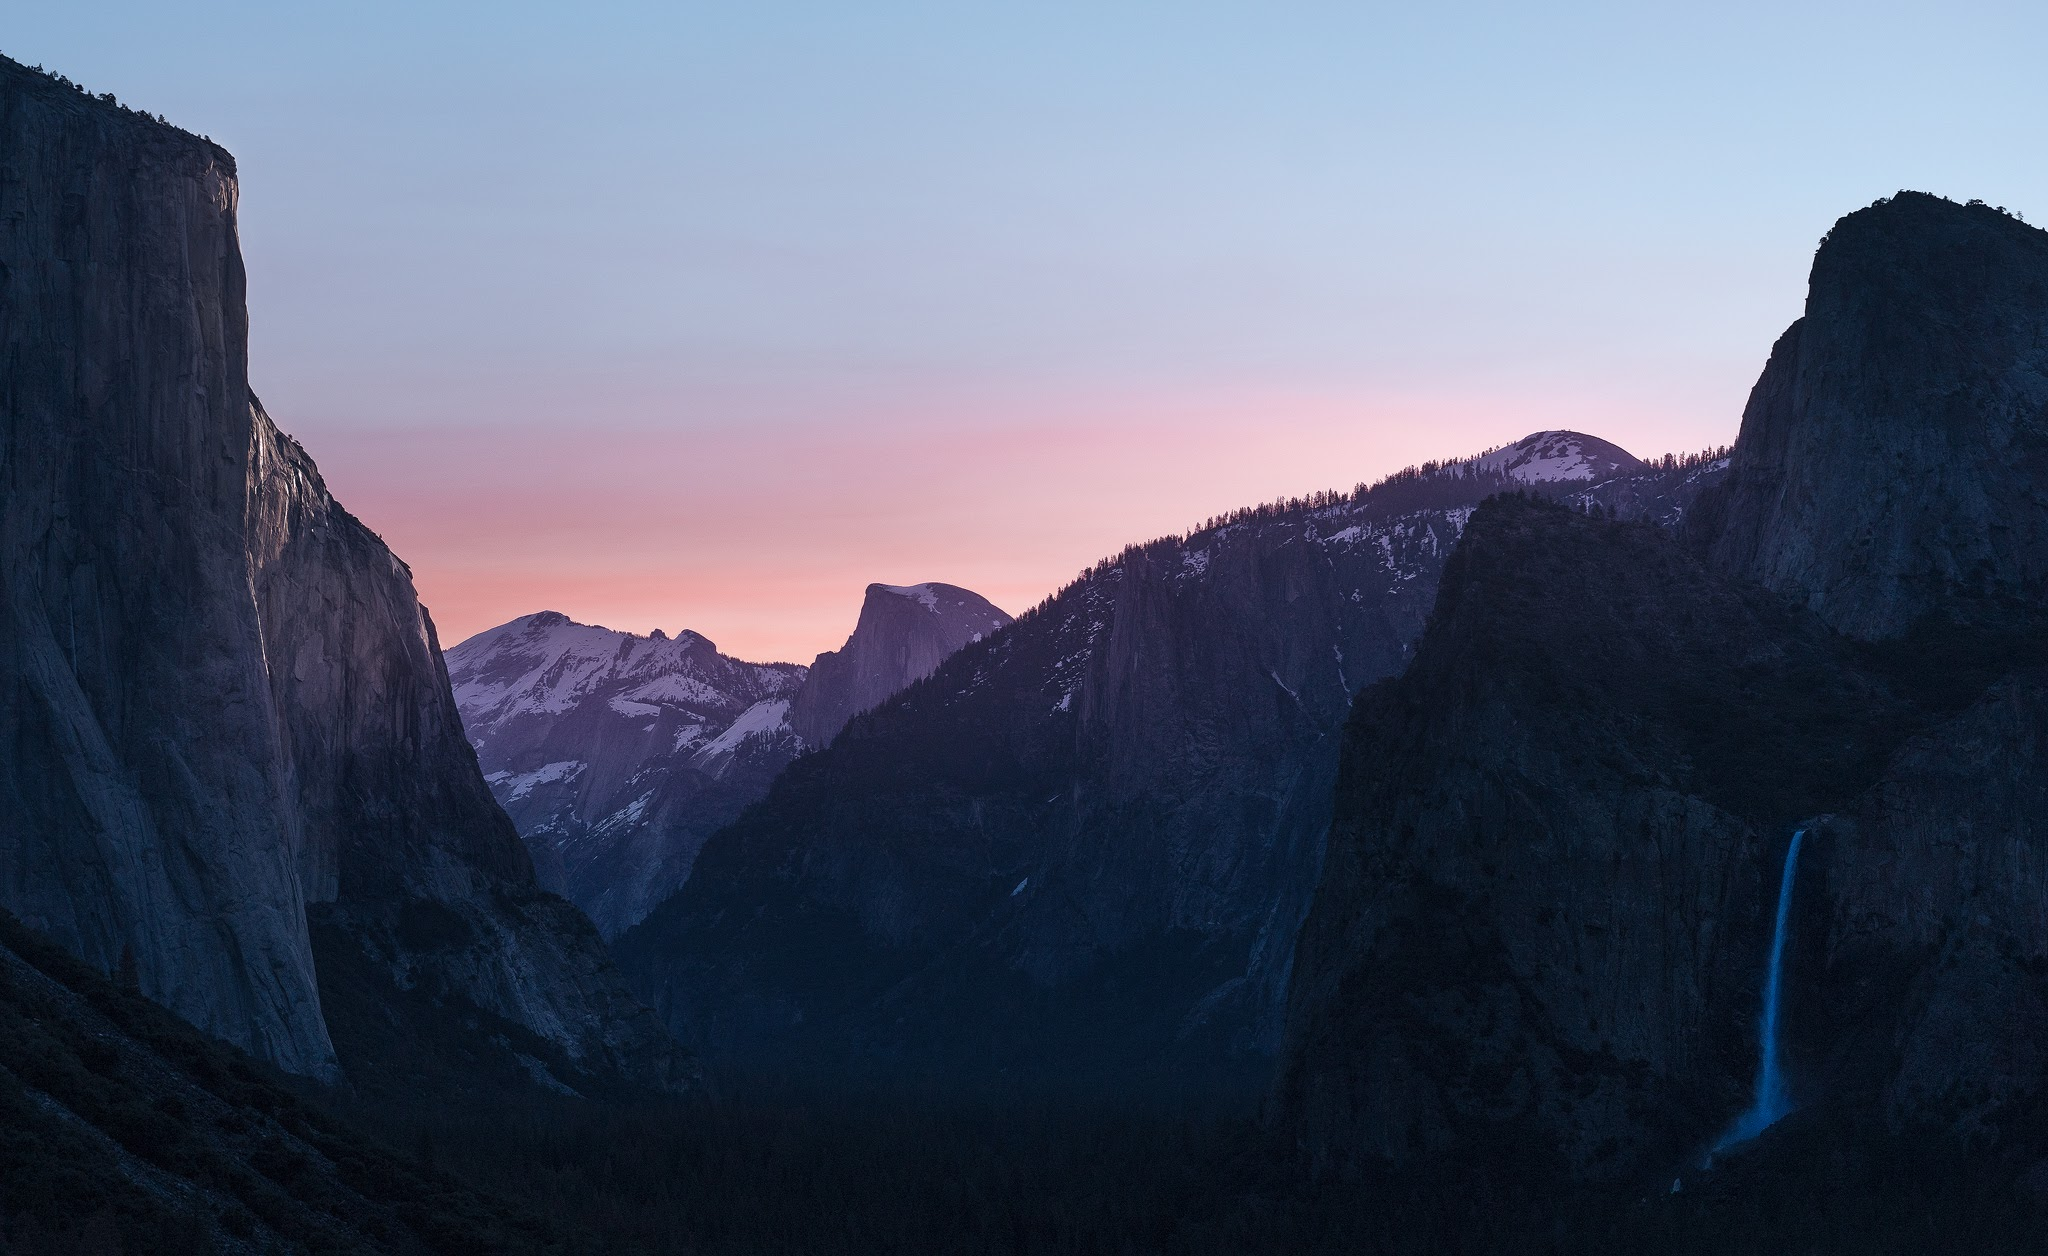 Yosemite-1-Web Prepared.jpg